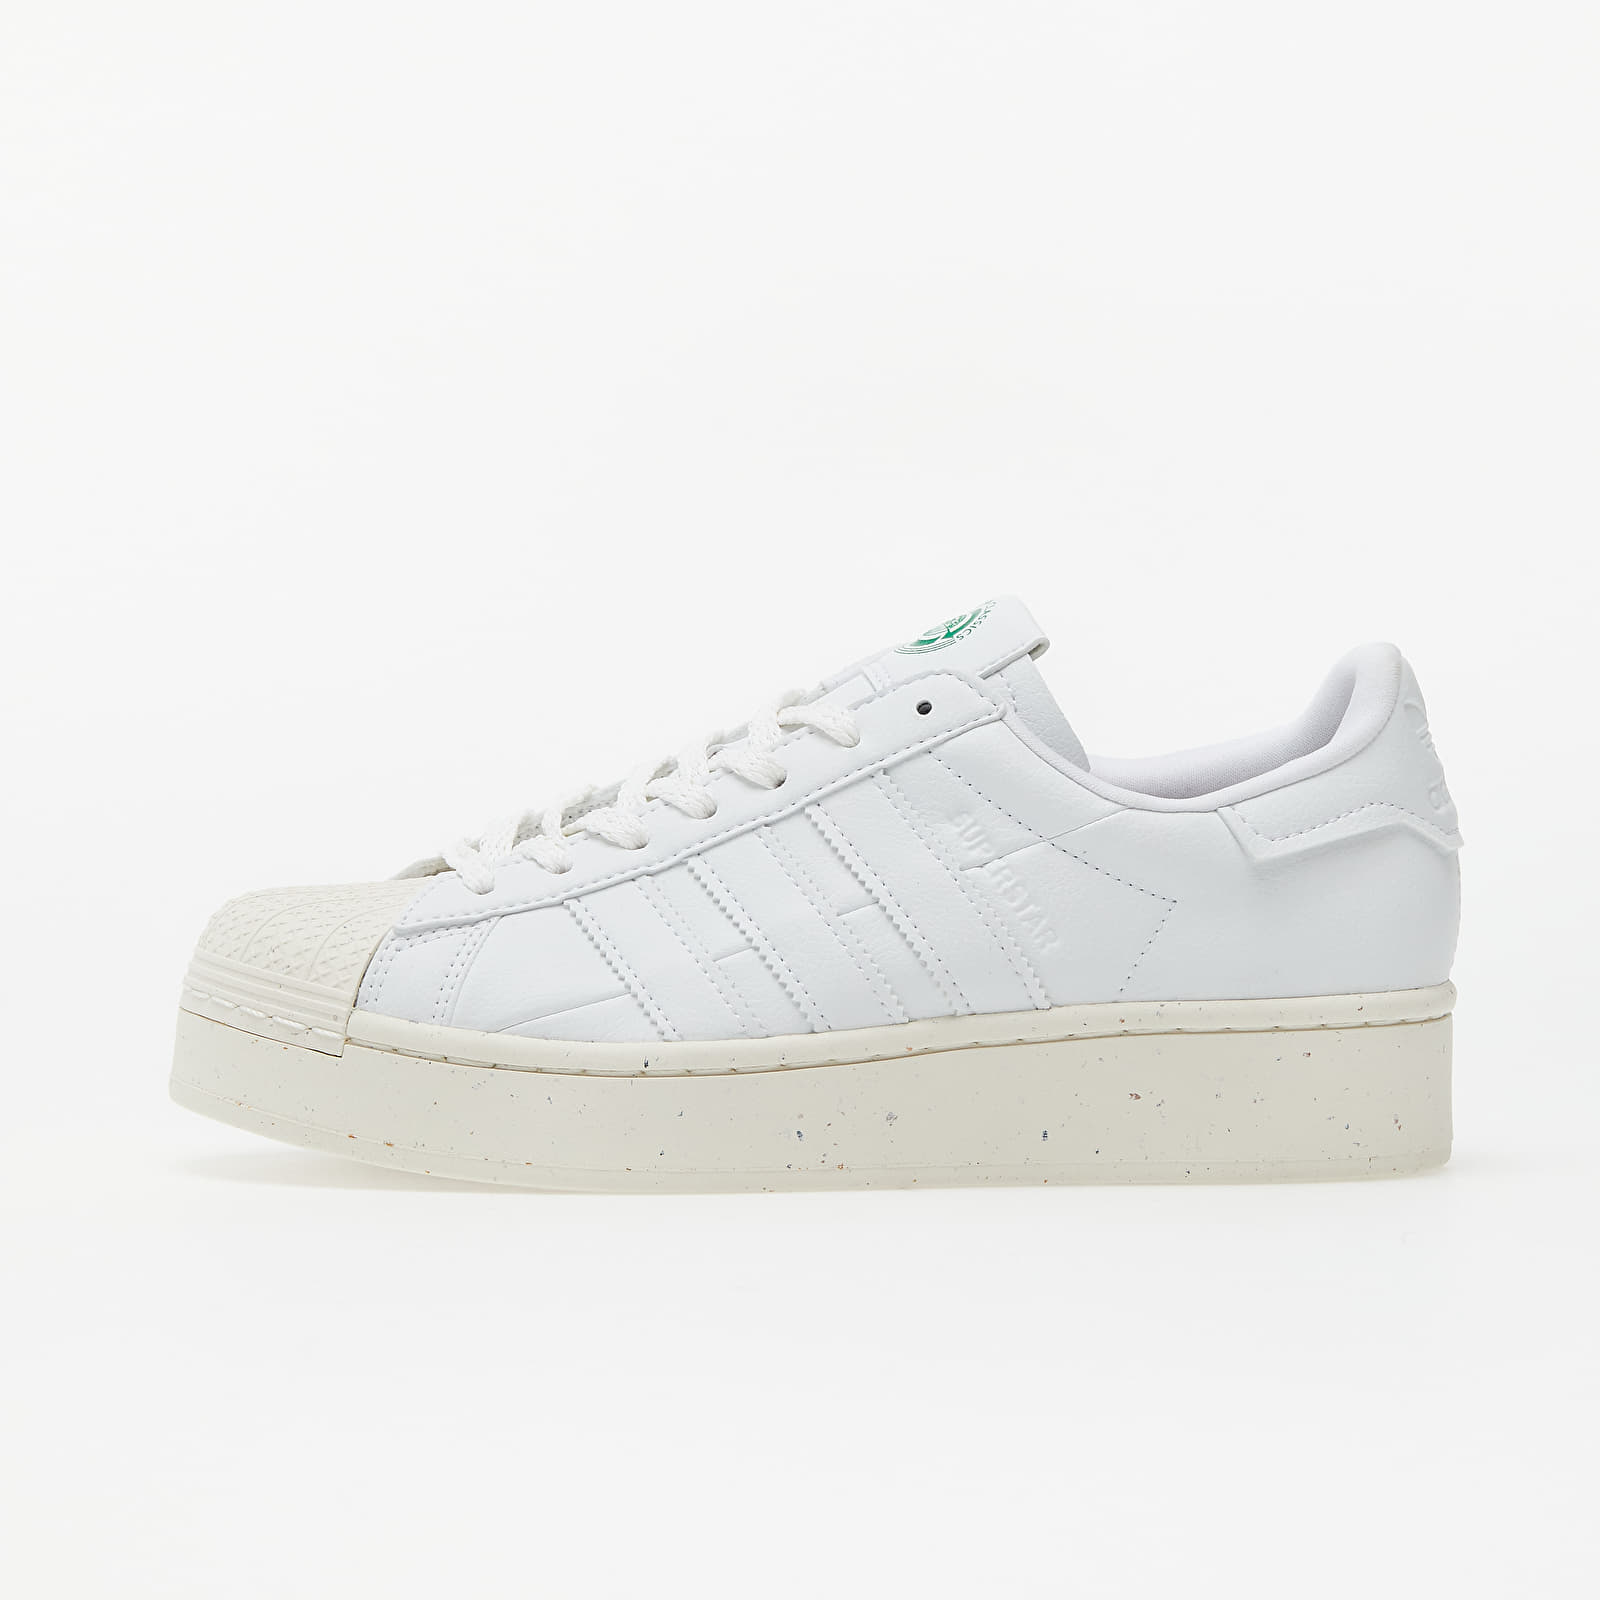 adidas Superstar Bold W Clean Classics Ftw White/ Ftw White/ Off White EUR 40